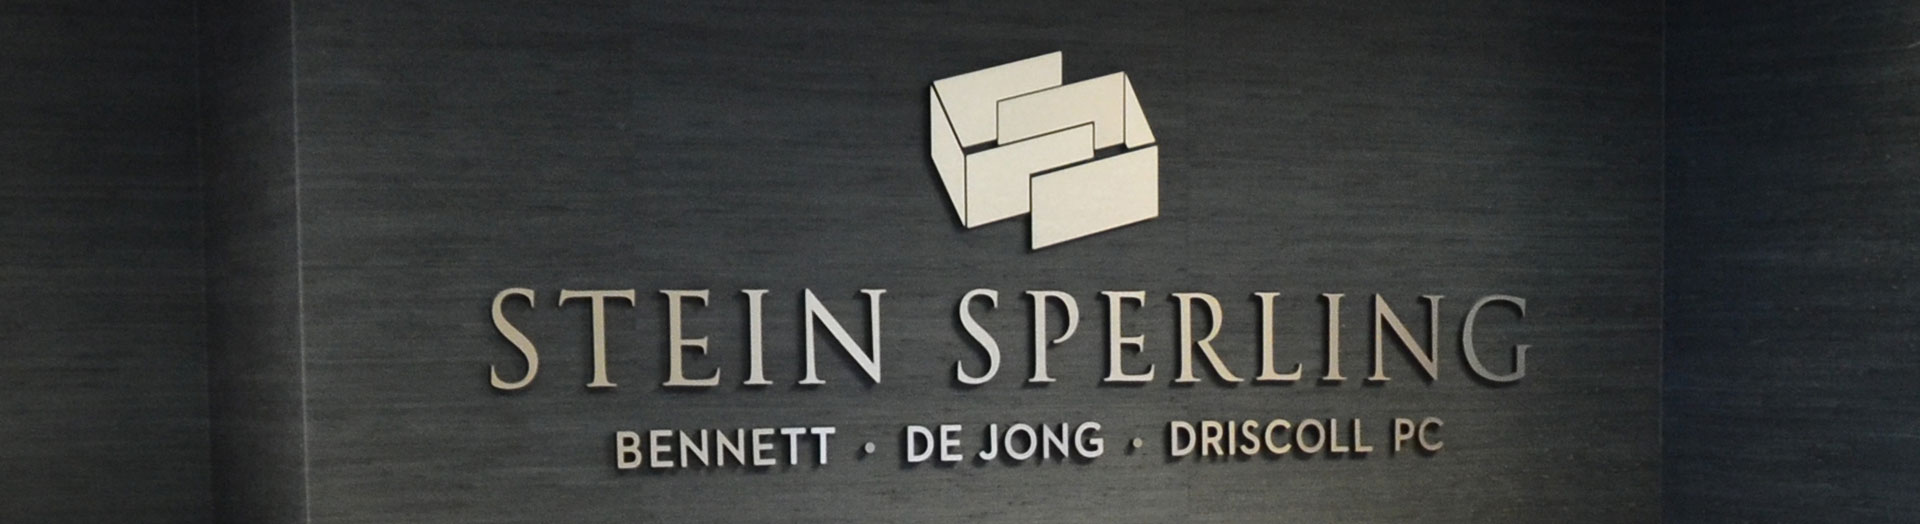 Stein Sperling Sign